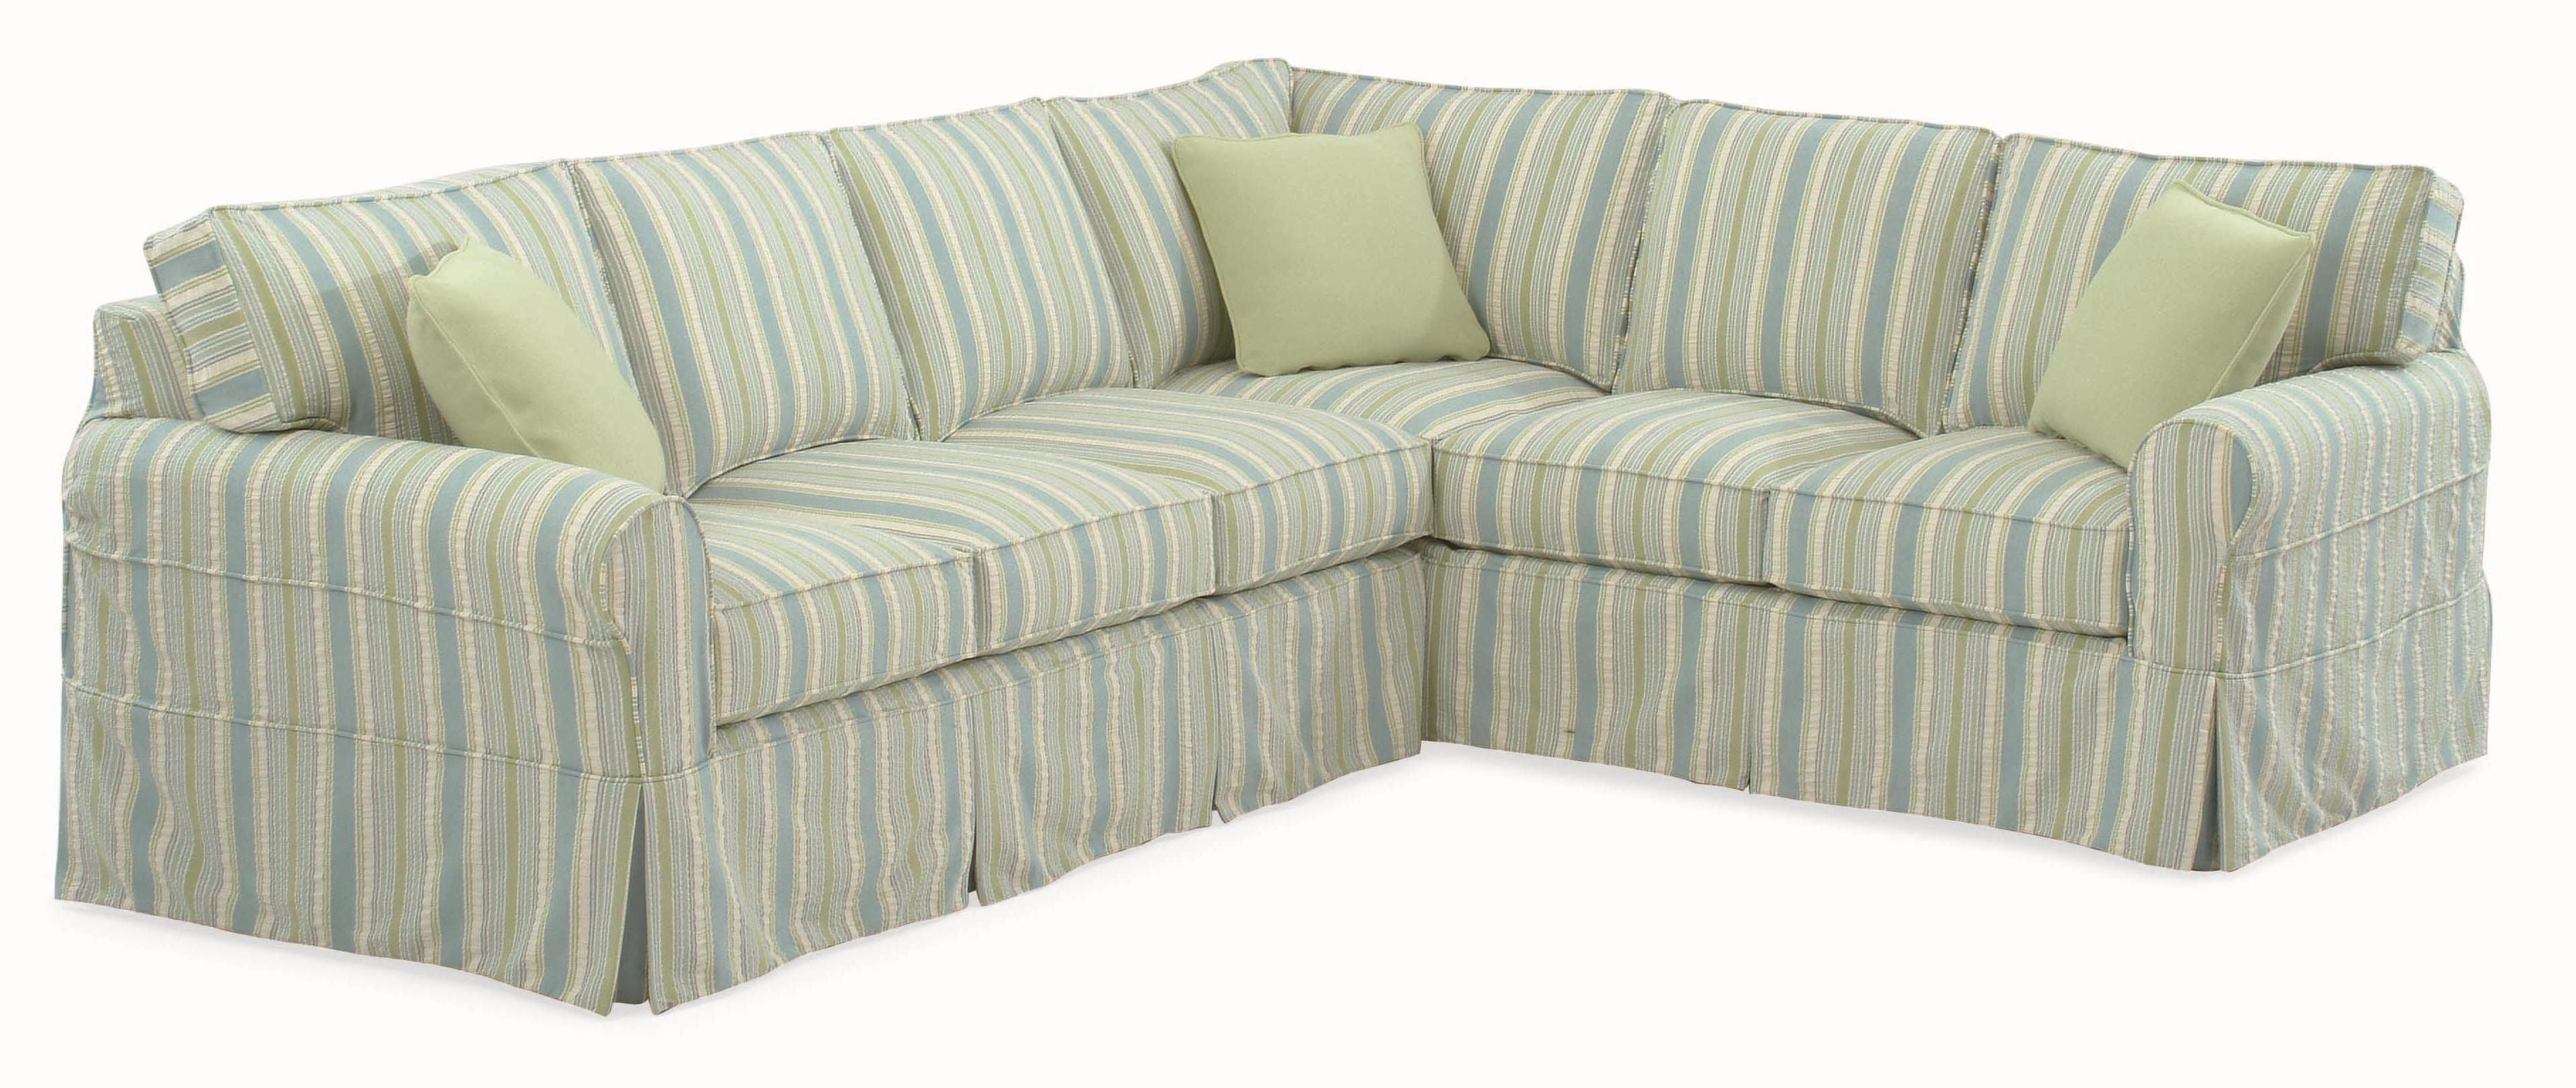 Best And Newest Slipcovers For Sectionals With Chaise For Braxton Culler 728 Casual Sectional Sofa With Rolled Arms And (View 3 of 15)